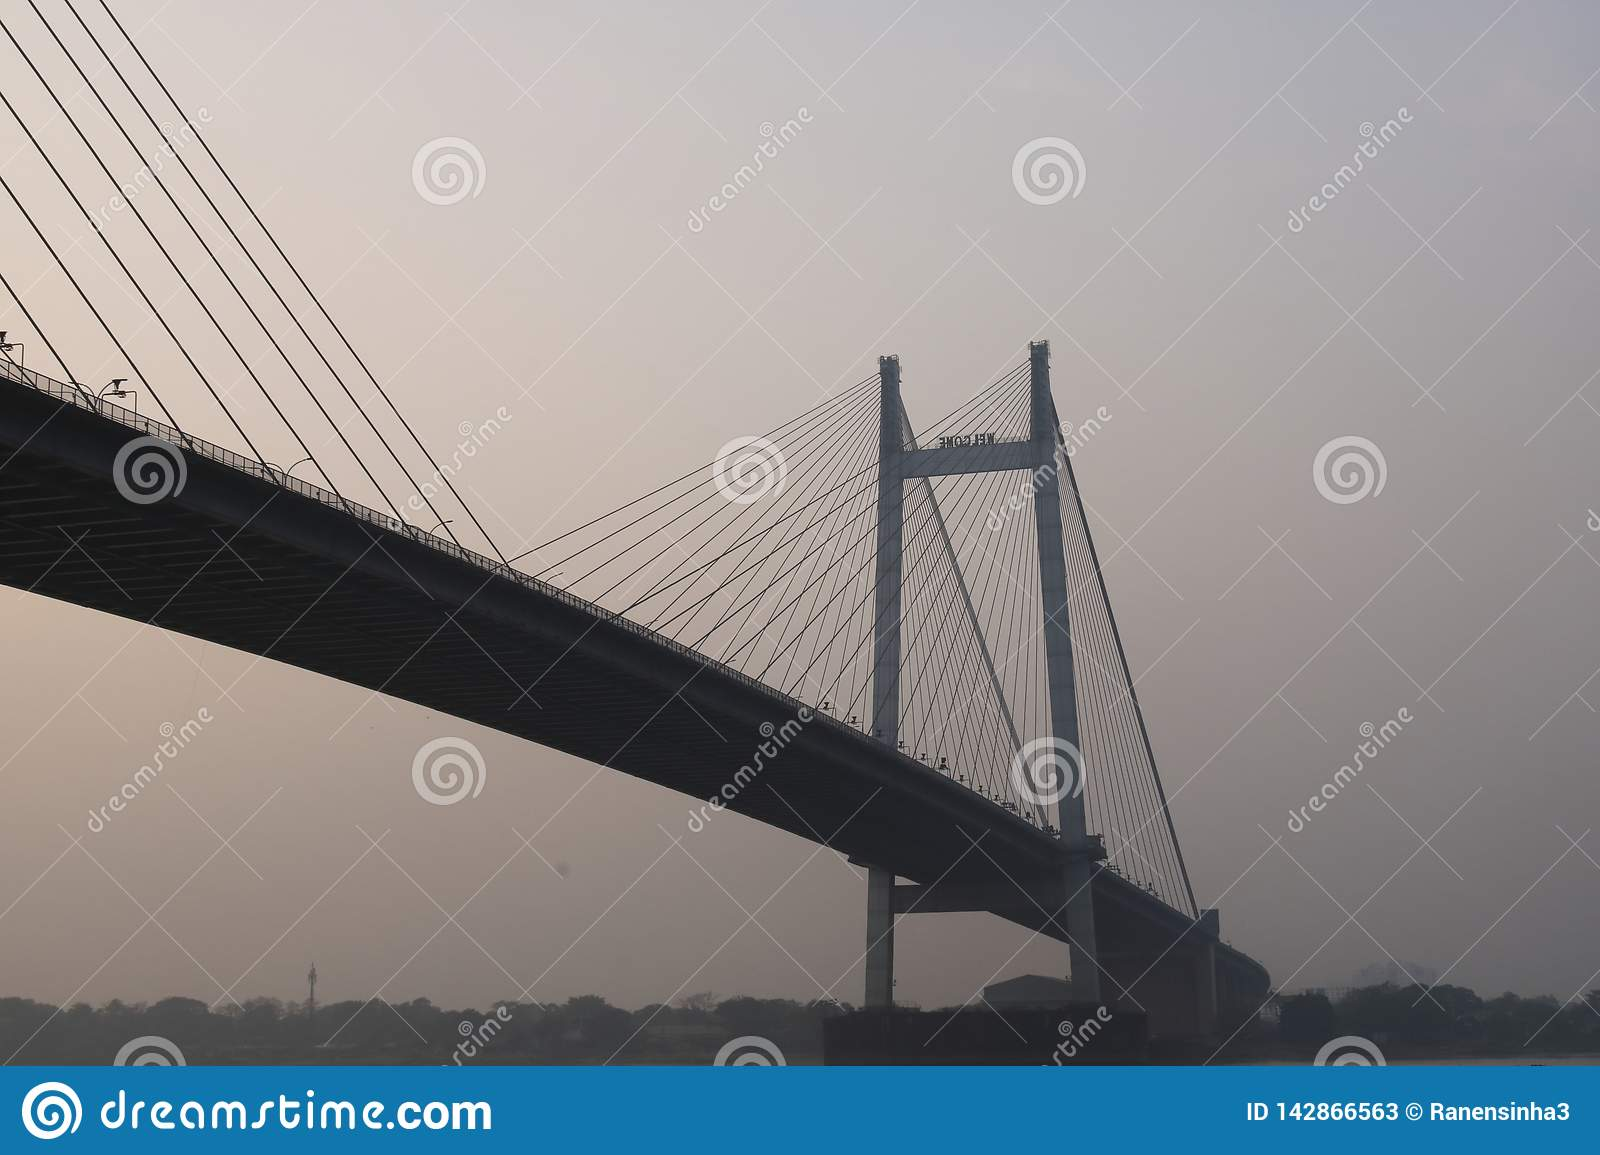 Vidyasagar Setu Bridge over Ganga-rivier, India